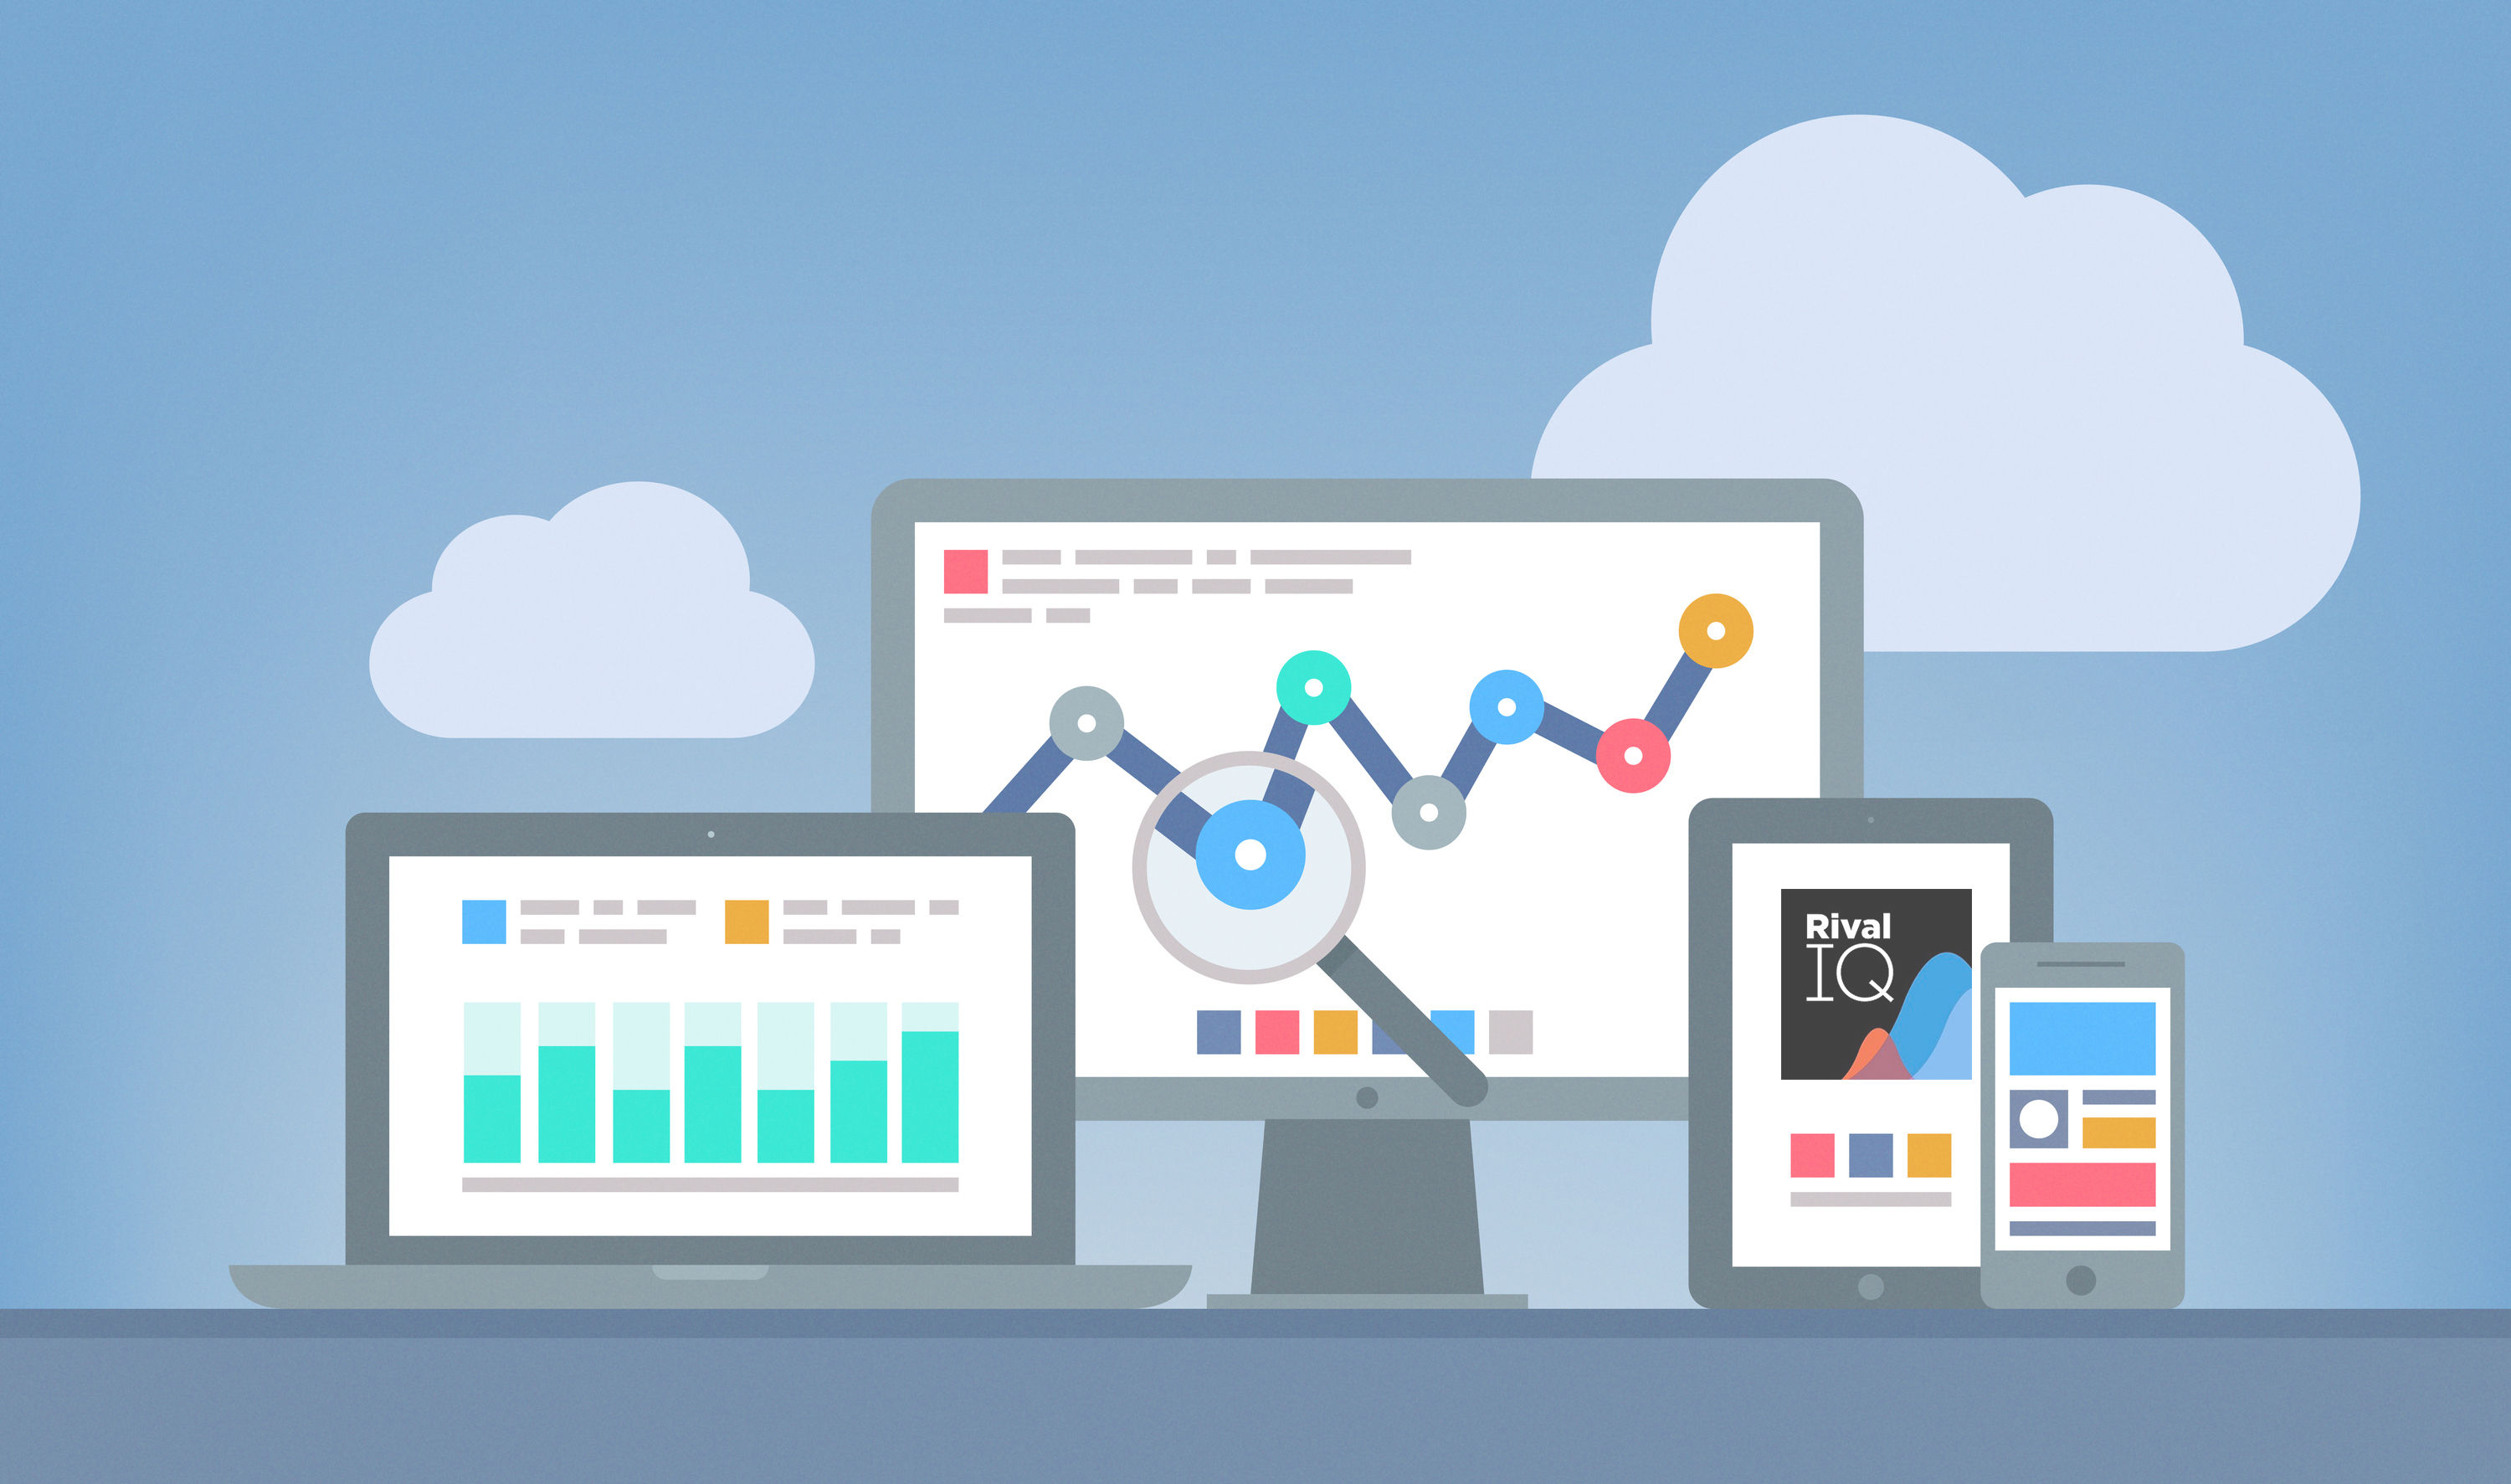 analytical mindset is one of the most important qualities to have for an inbound marketer